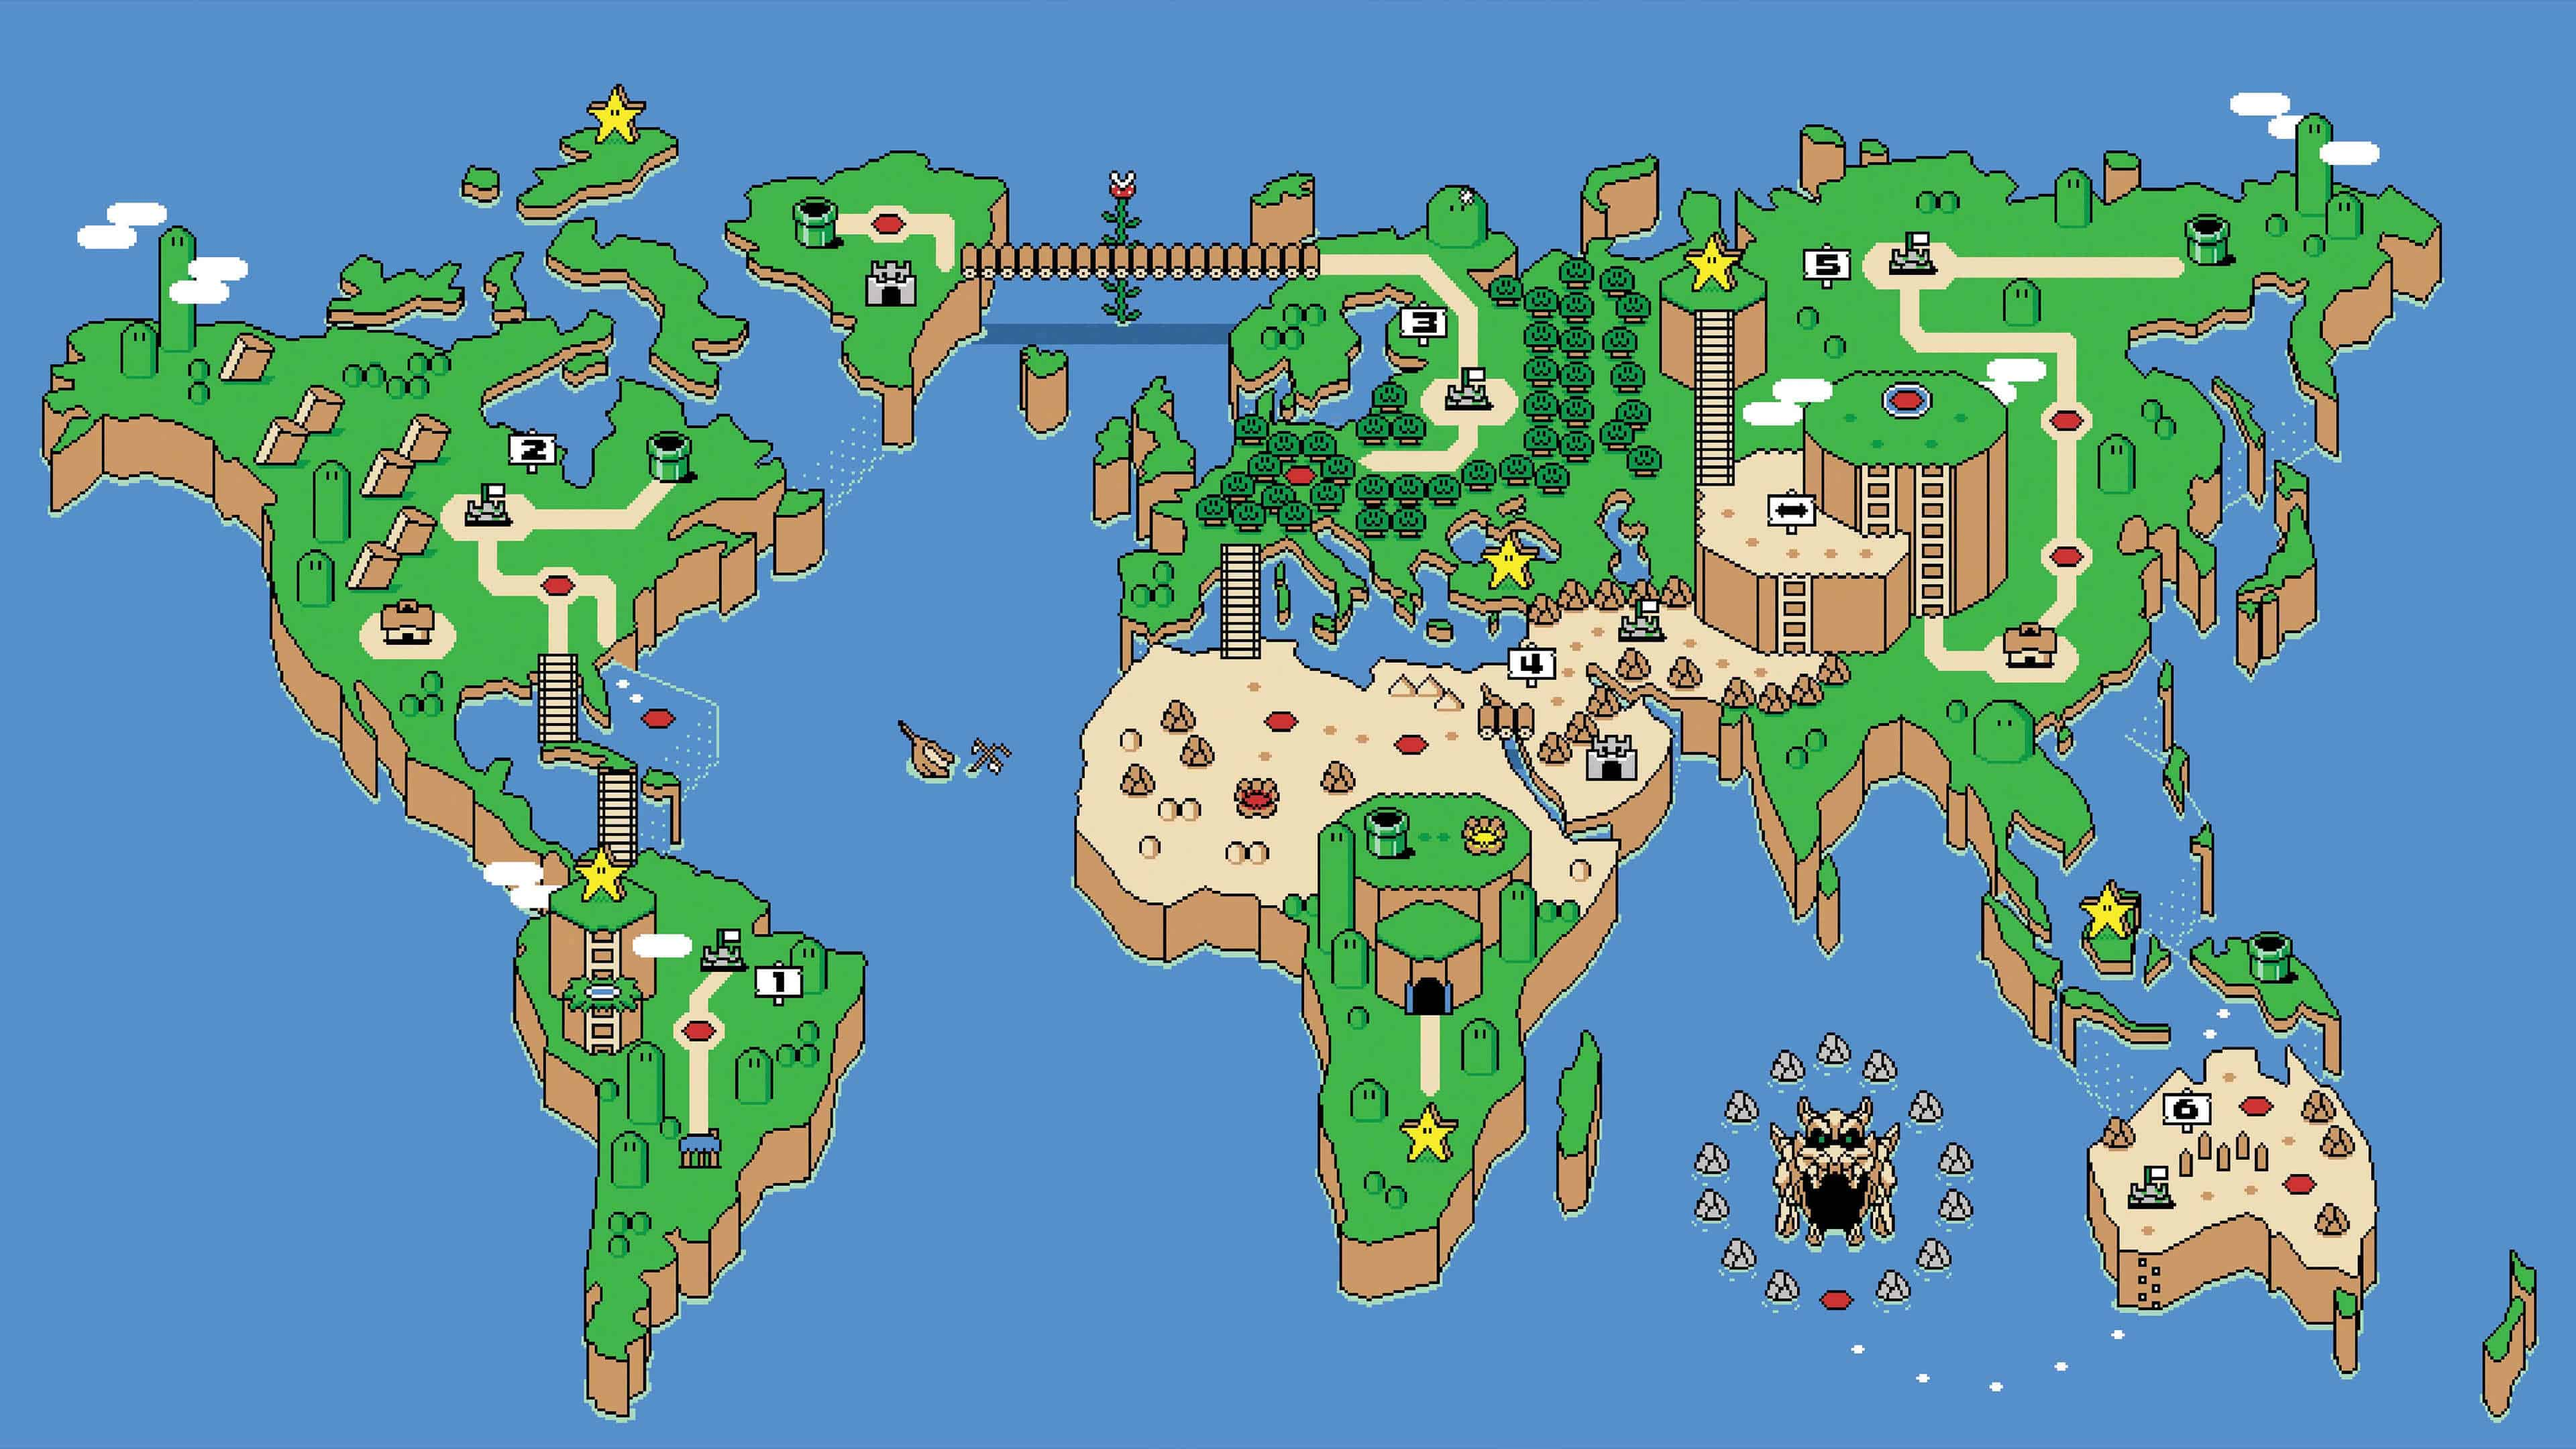 Super mario world map uhd 4k wallpaper pixelz super mario world map uhd 4k wallpaper gumiabroncs Choice Image